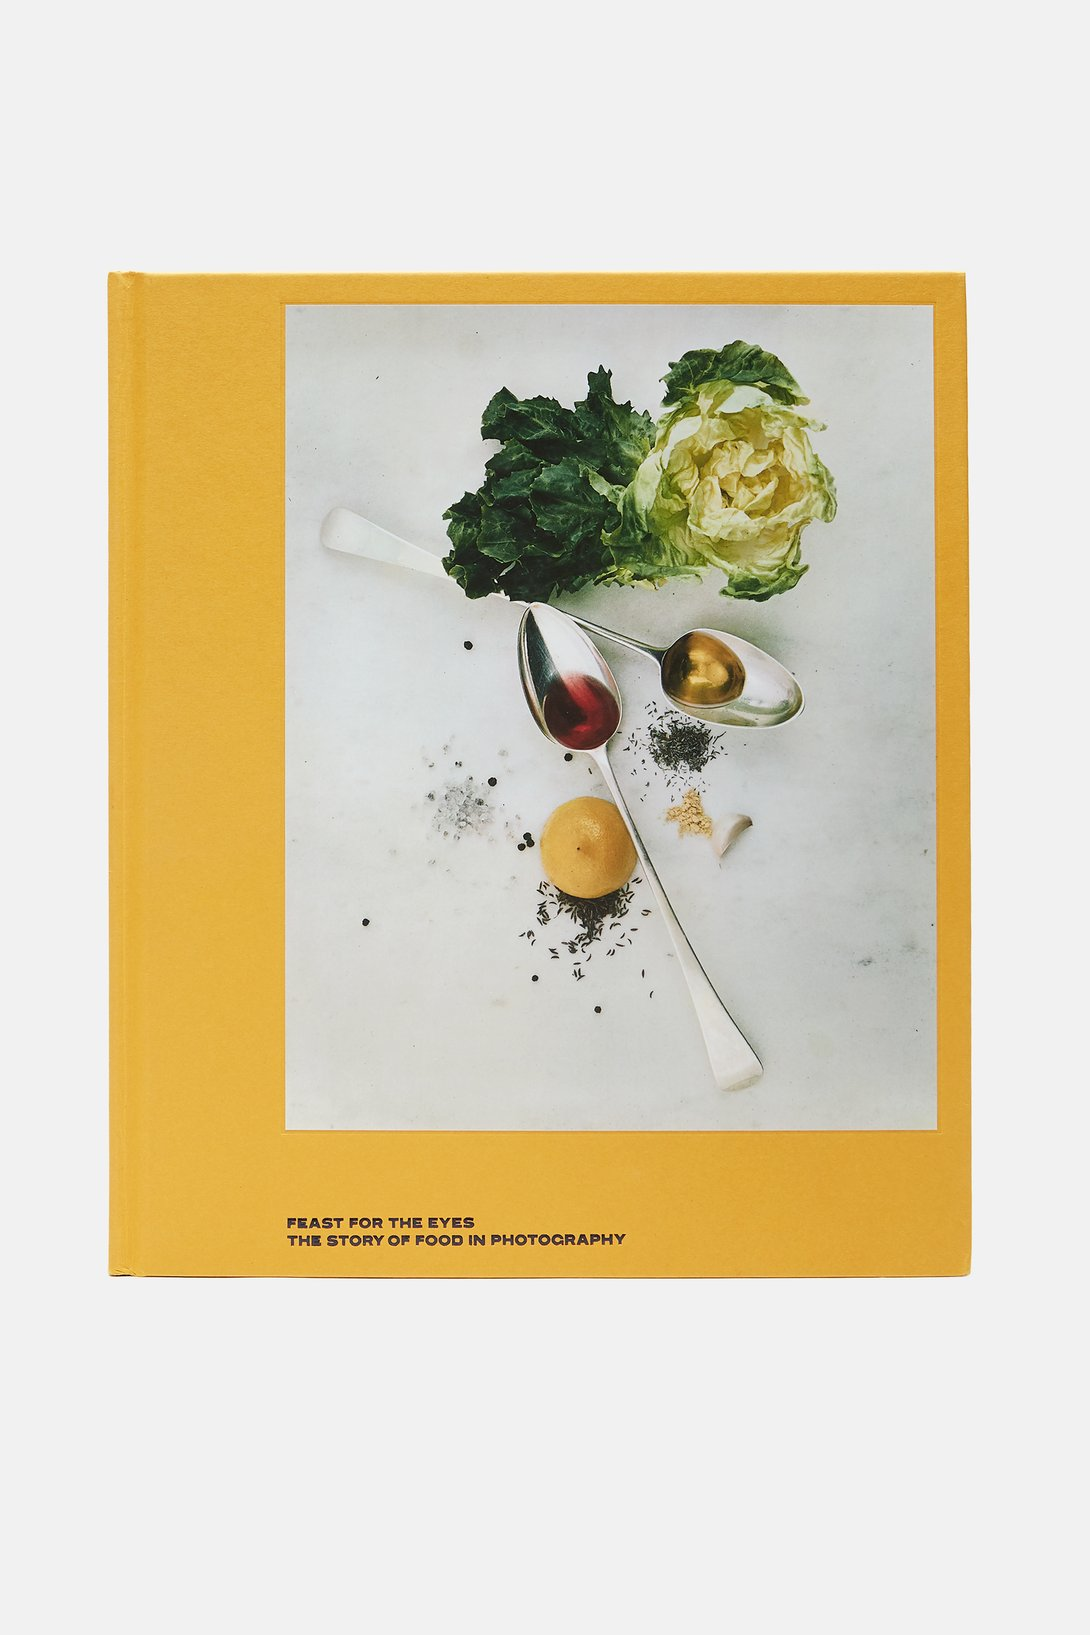 """Feast For The Eyes """"The Story Of Food In Photography"""" featuring artists from all eras—Roger Fenton, Nickolas Muray, Edward Weston, Irving Penn, Stephen Shore, Laura Letinsky, Wolfgang Tillmans, Nobuyoshi Araki, and Martin Parr to name a few."""